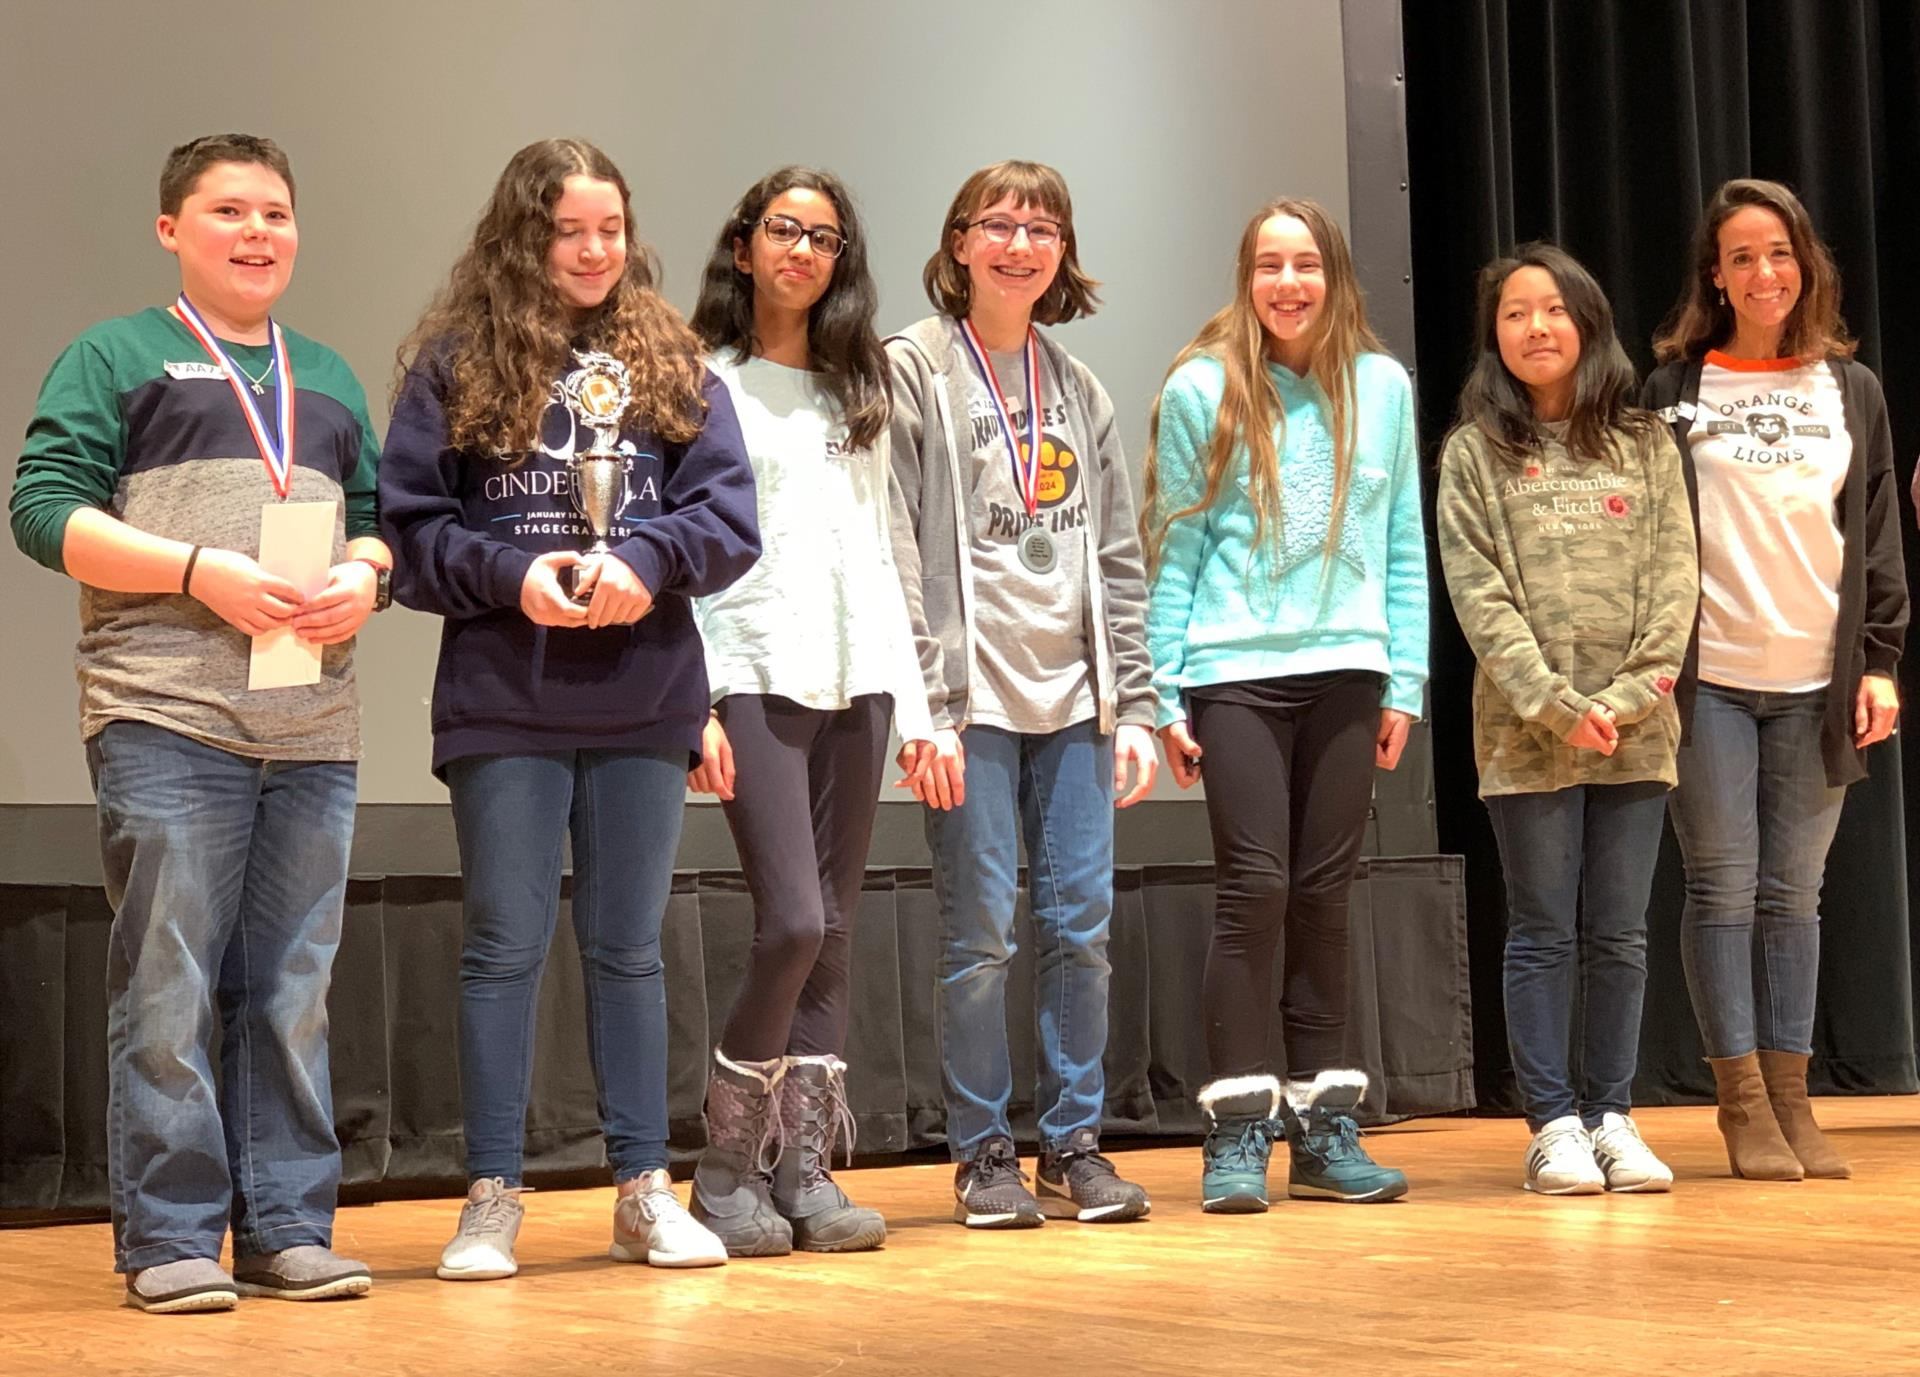 BMS seventh graders and their advisor line up on stage with trophy